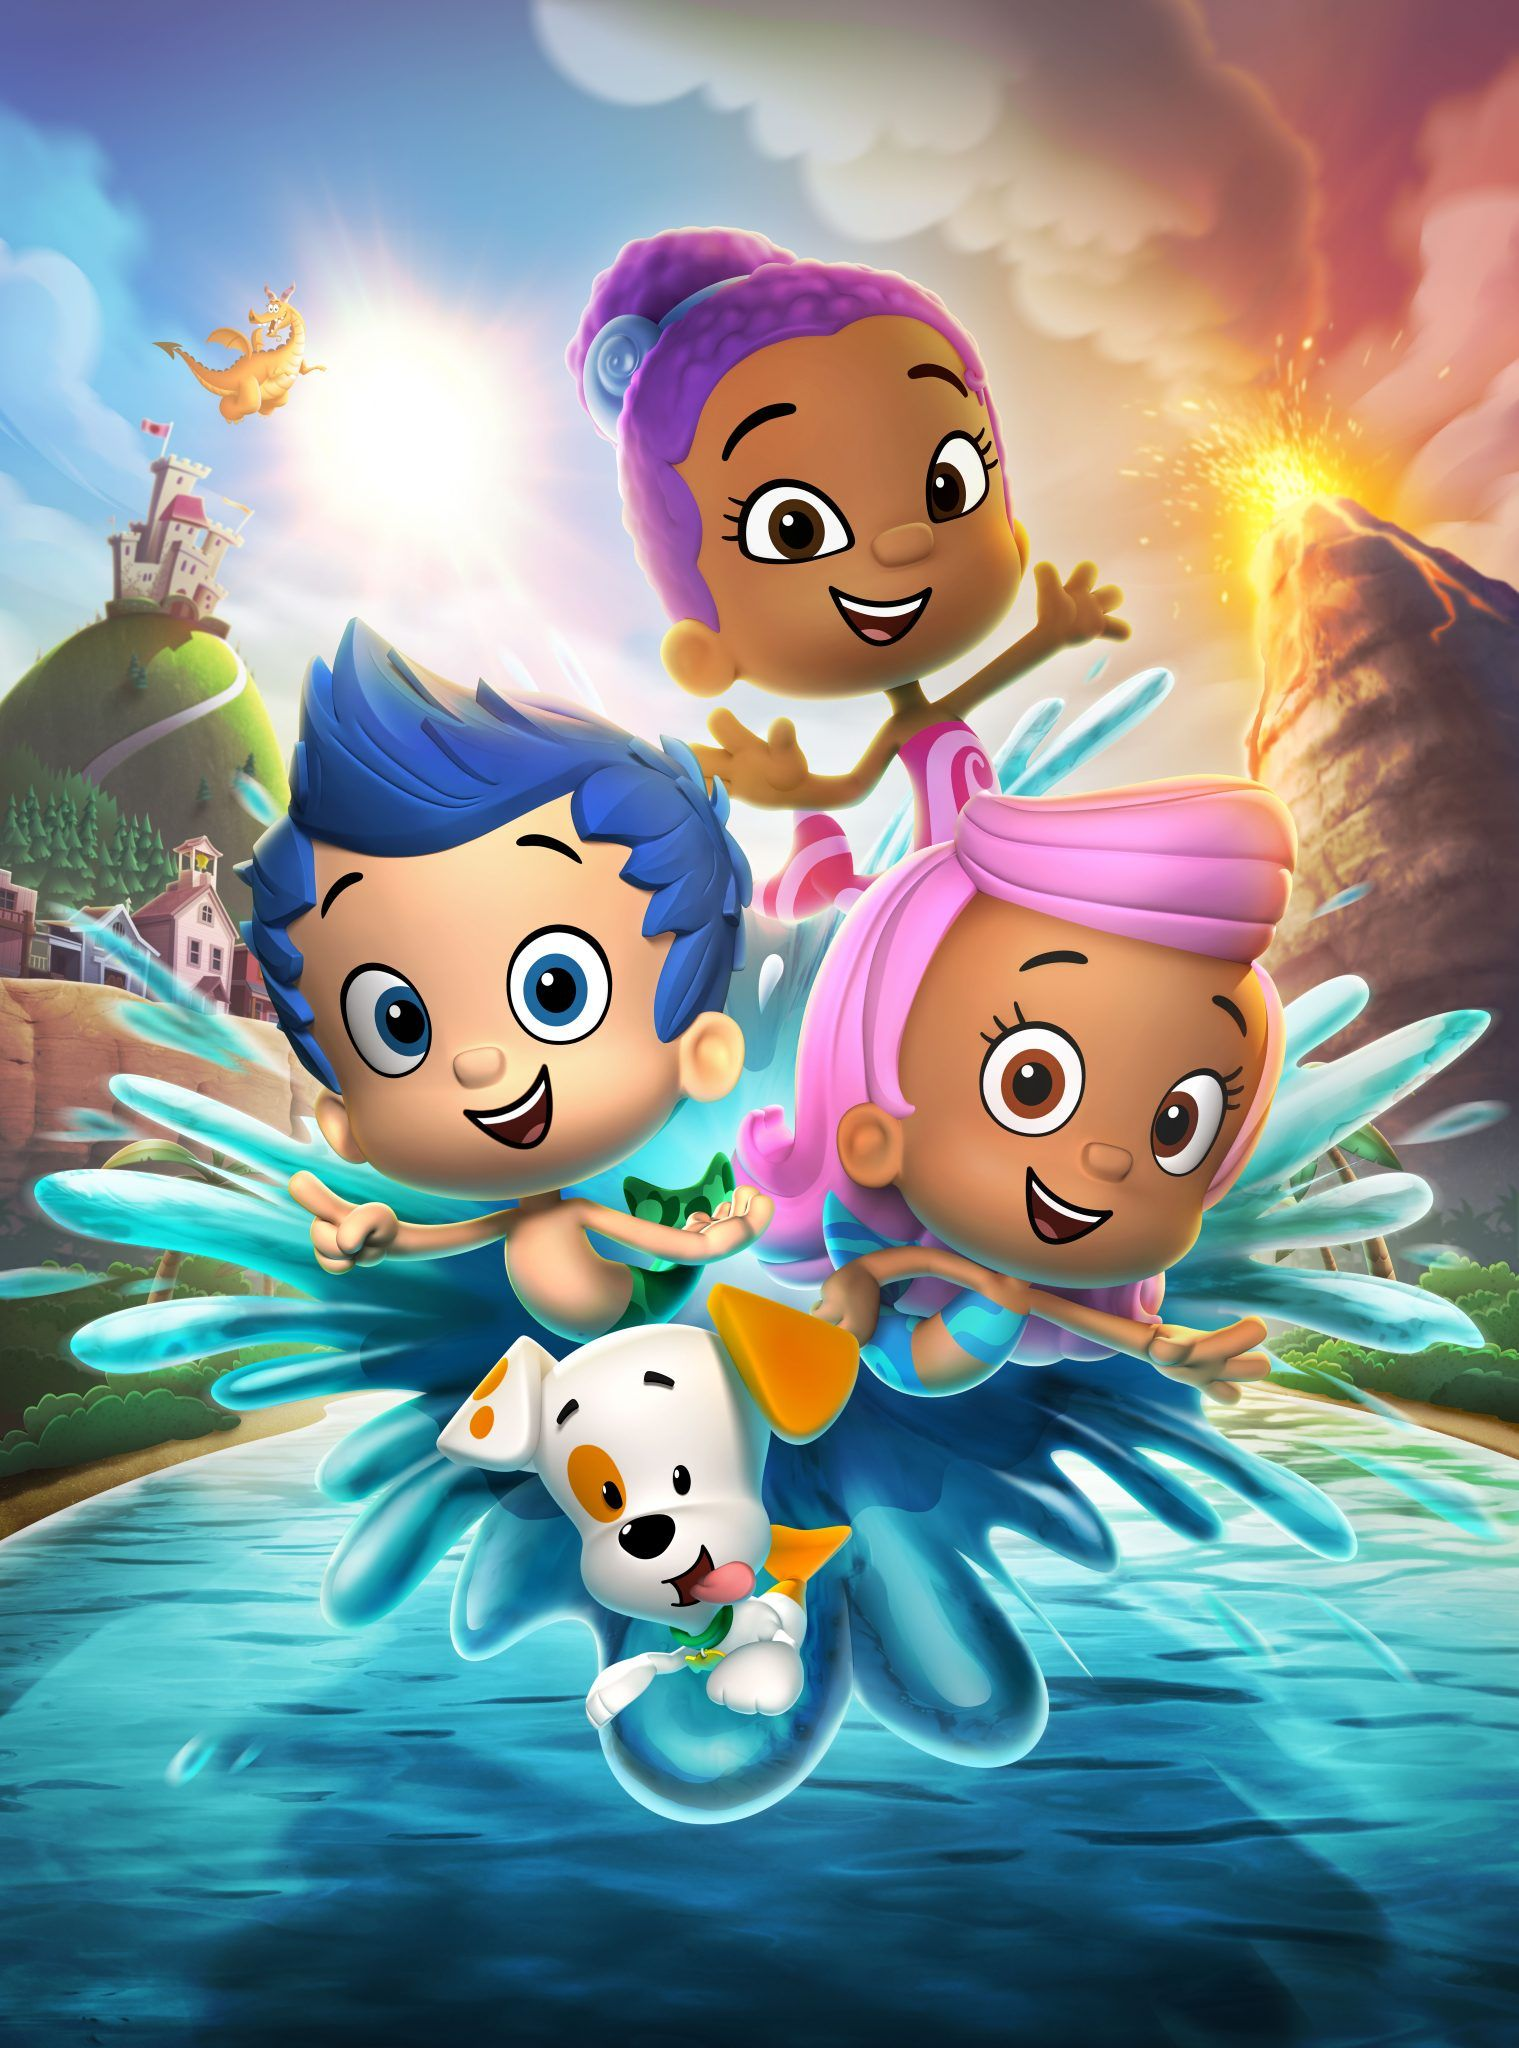 New Member Of Bubble Guppies Zooli Nick Jr S Bubble Guppies Guppy Relaxing Coloring Book